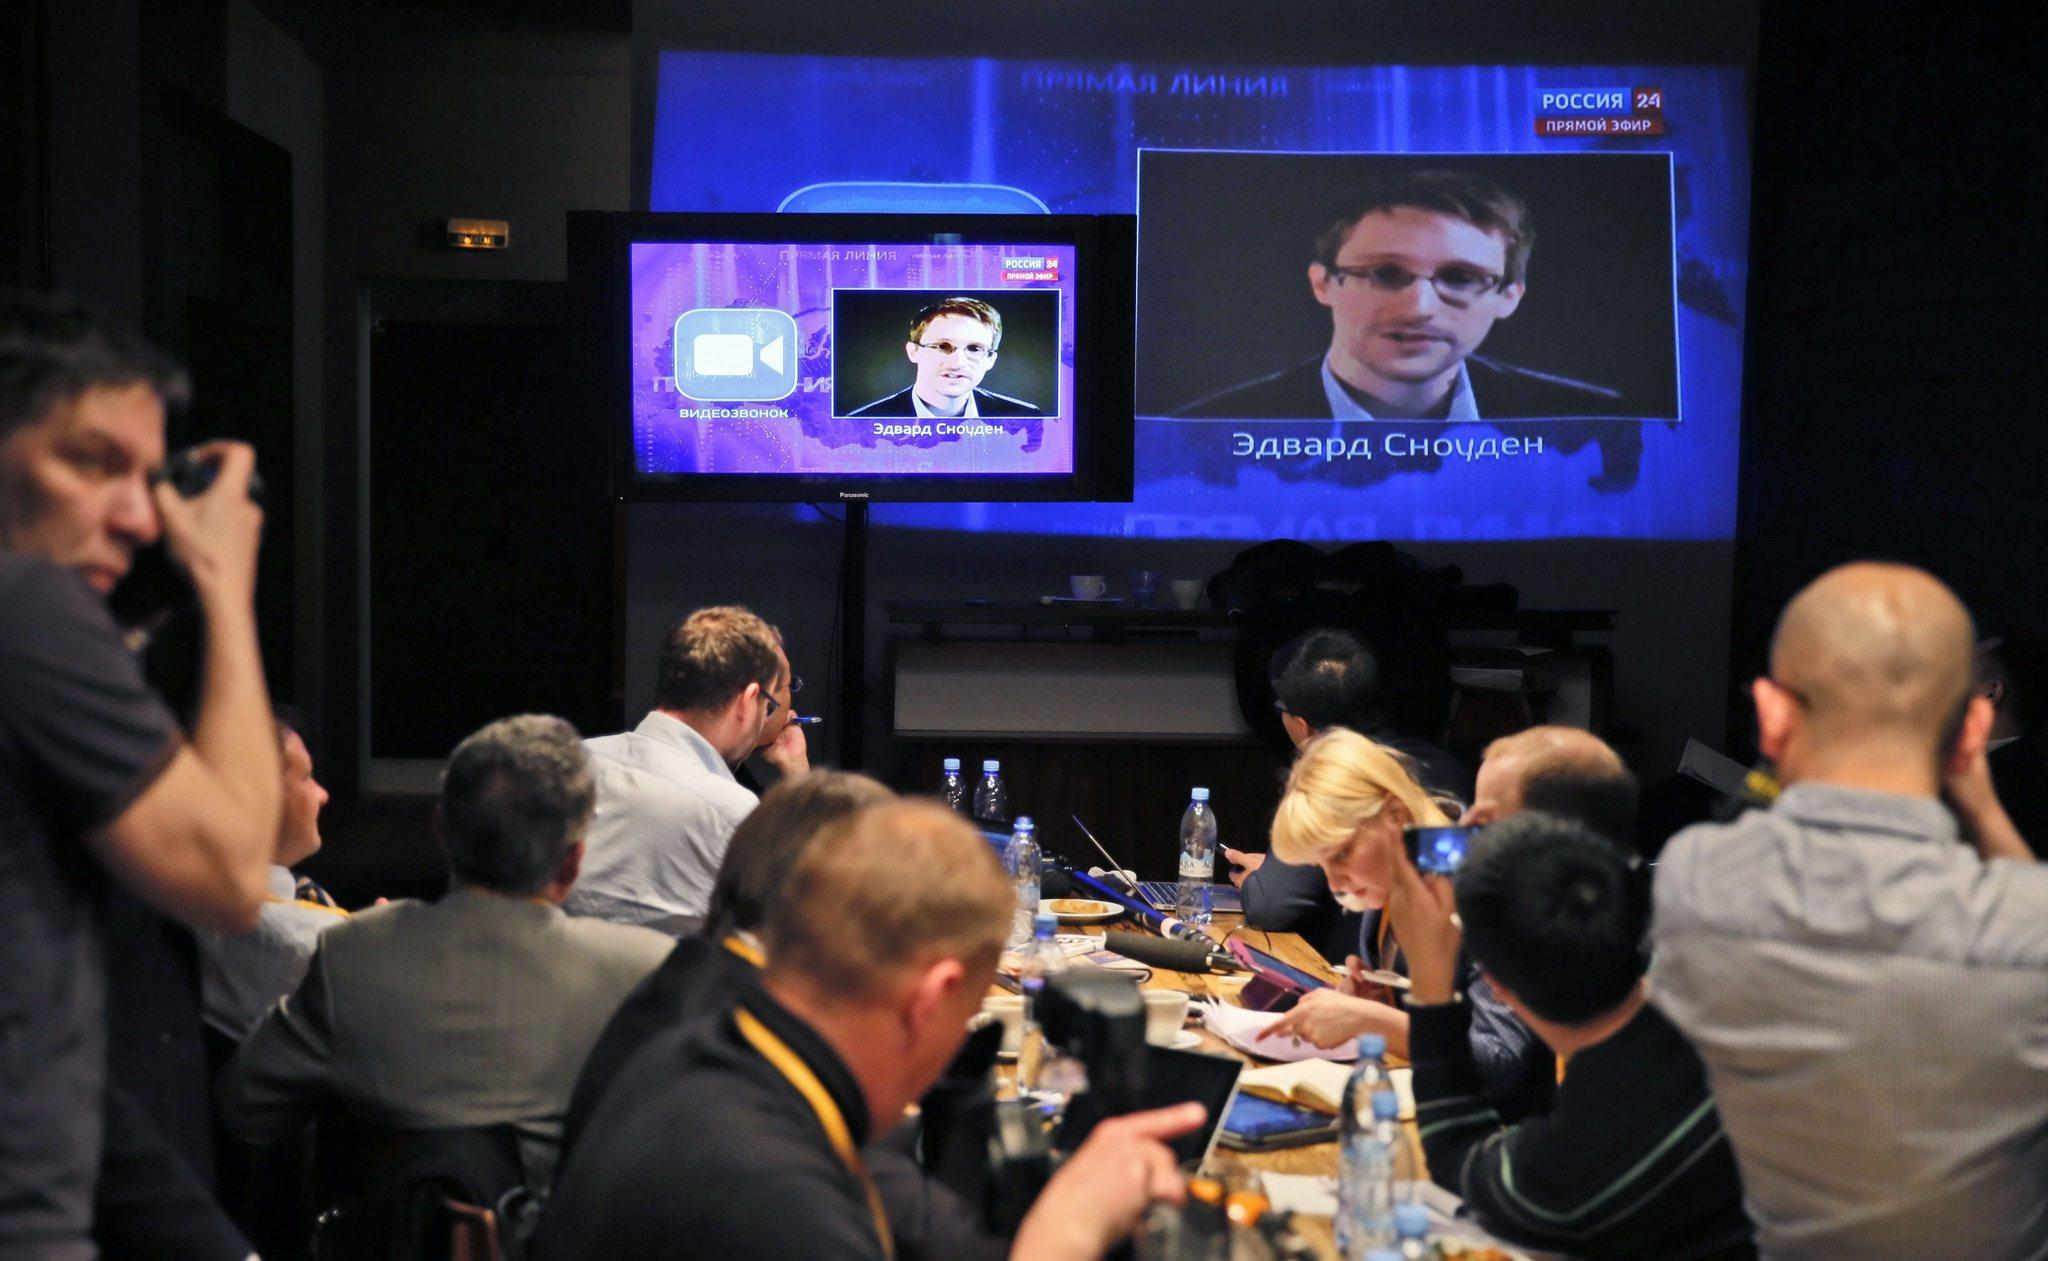 Journalists listen to a question posed by former U.S. spy agency NSA contractor Edward Snowden during Russian President Vladimir Putin's live broadcast on April 17. (EPA)